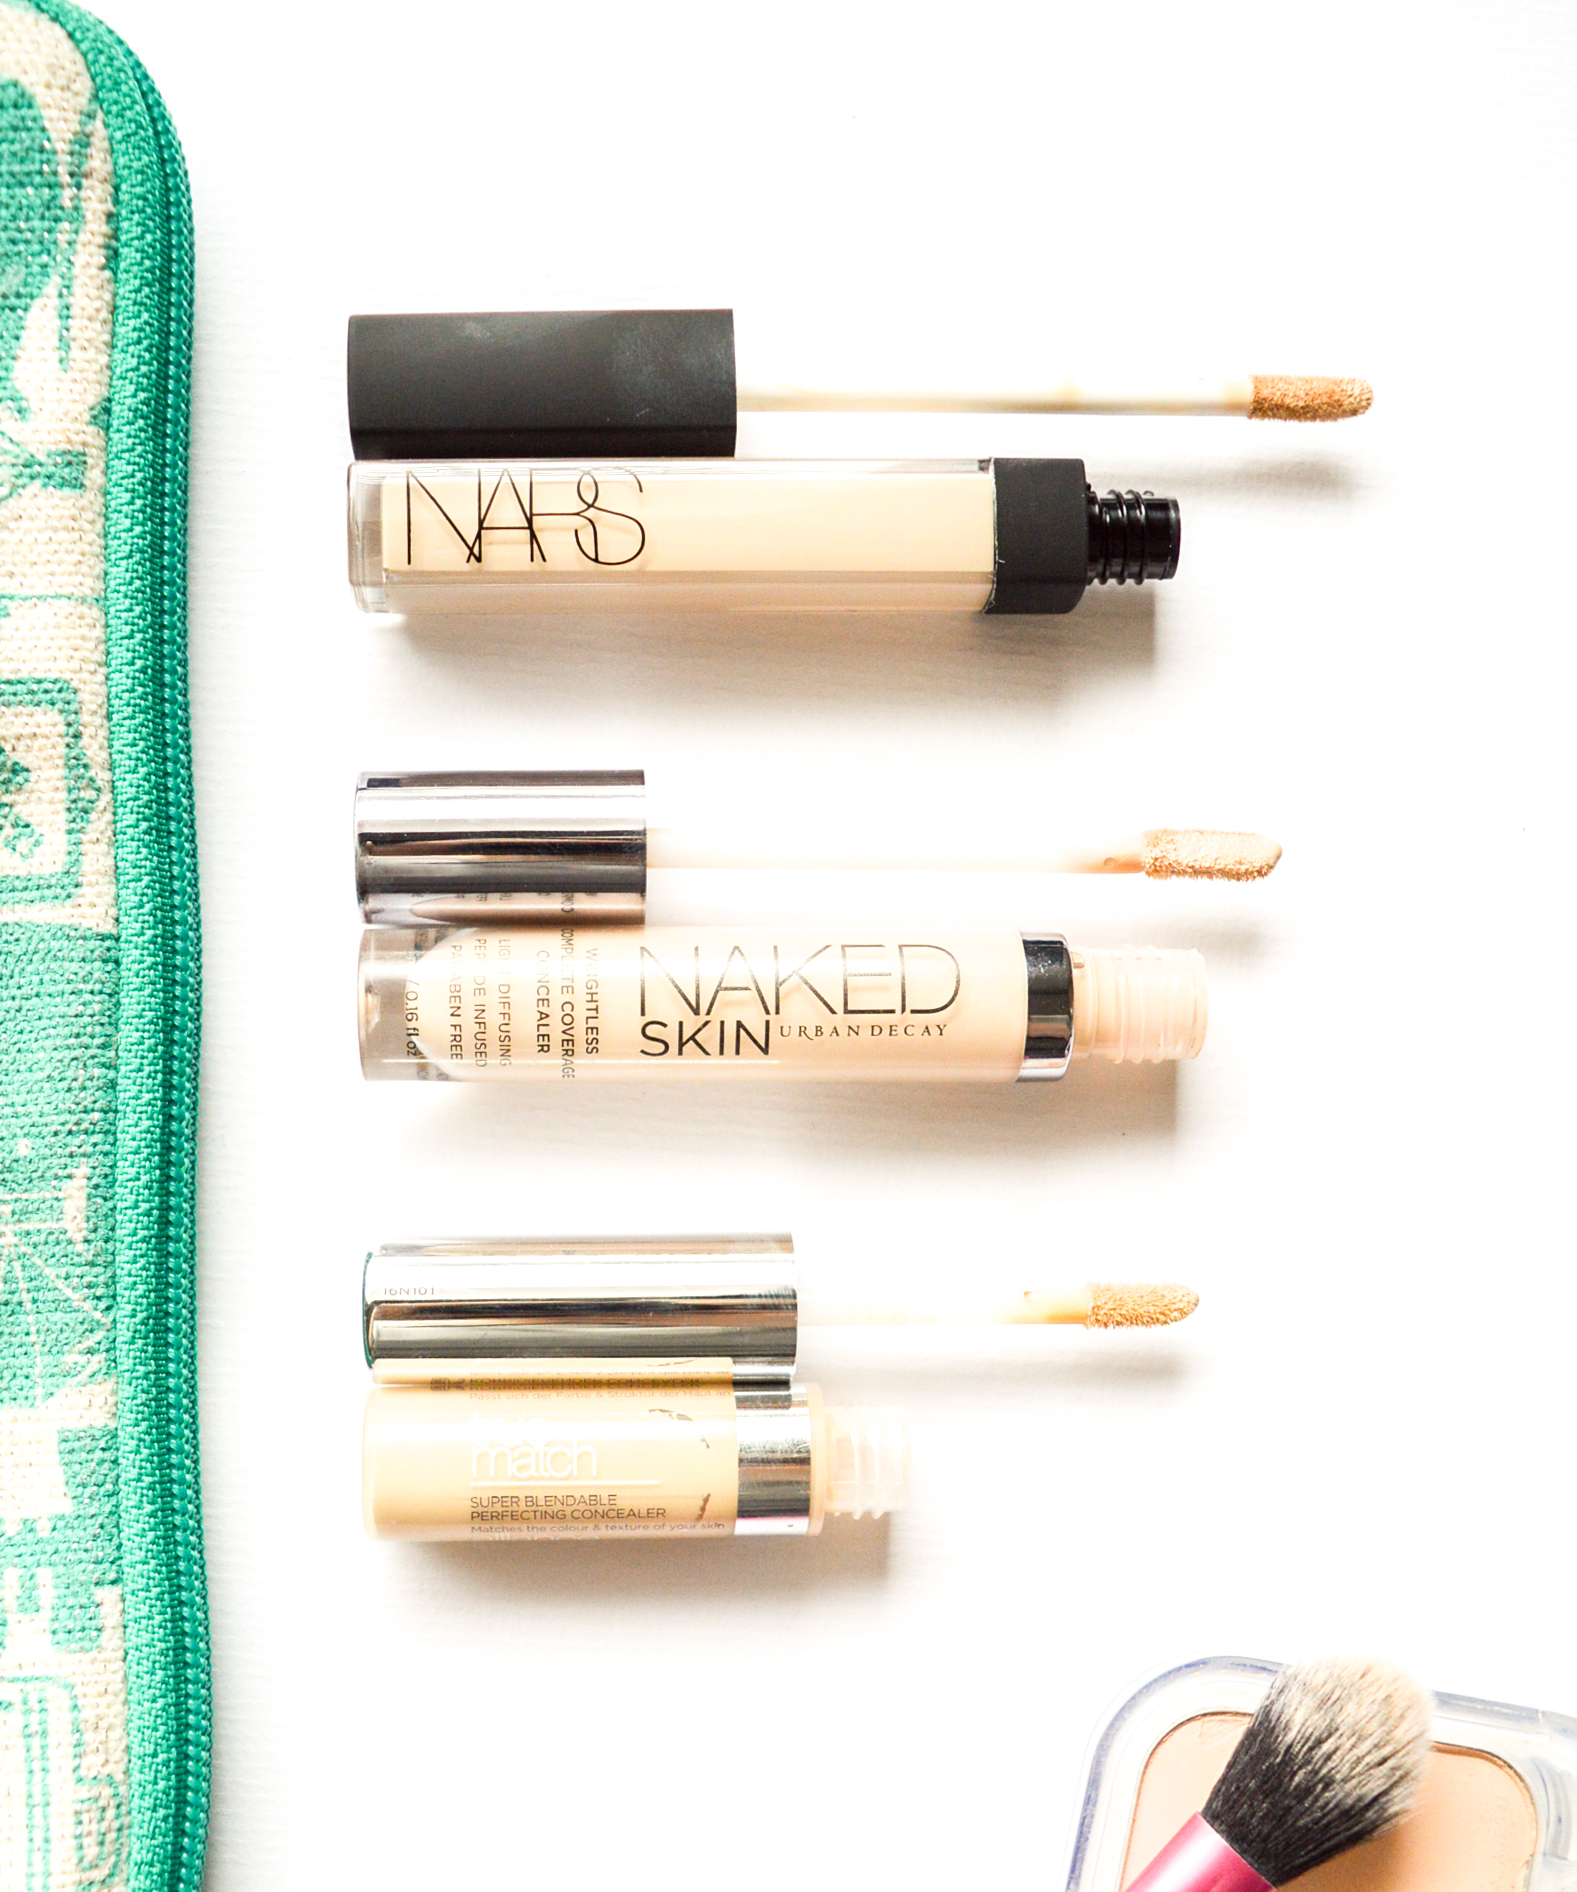 Parhaat peitevoiteet_Nars Radiant Creamy_Urban Decay Weightless Naked_swatch